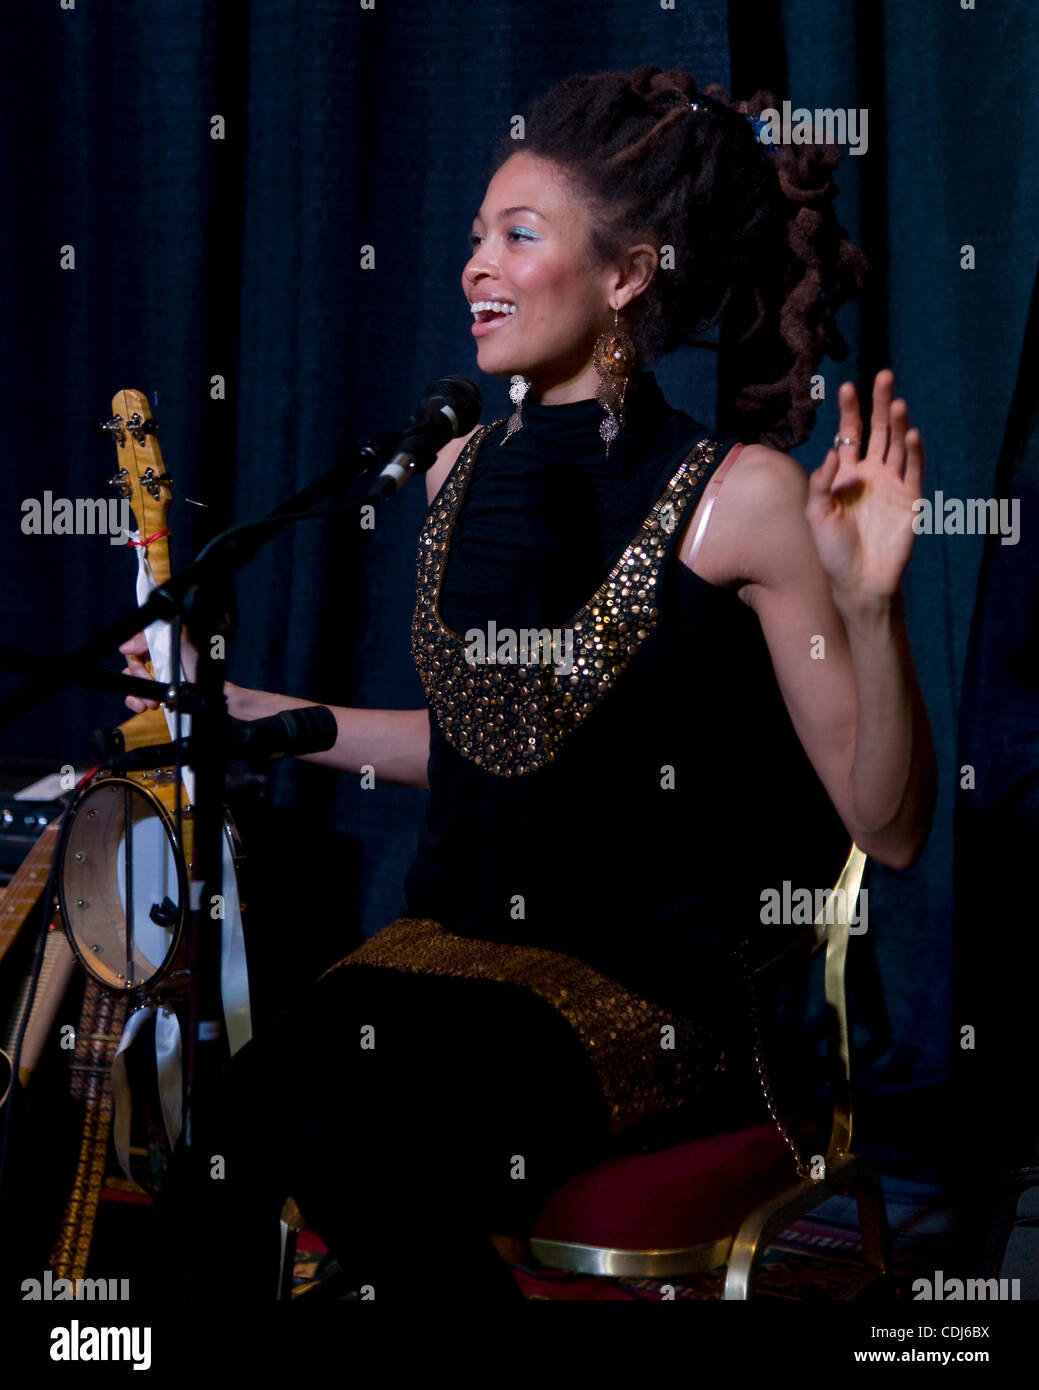 Feb.17, 2011 - Memphis, Tennessee, USA - VALERIE JUNE performs at the 2011 International Folk Alliance Conference. - Stock Image